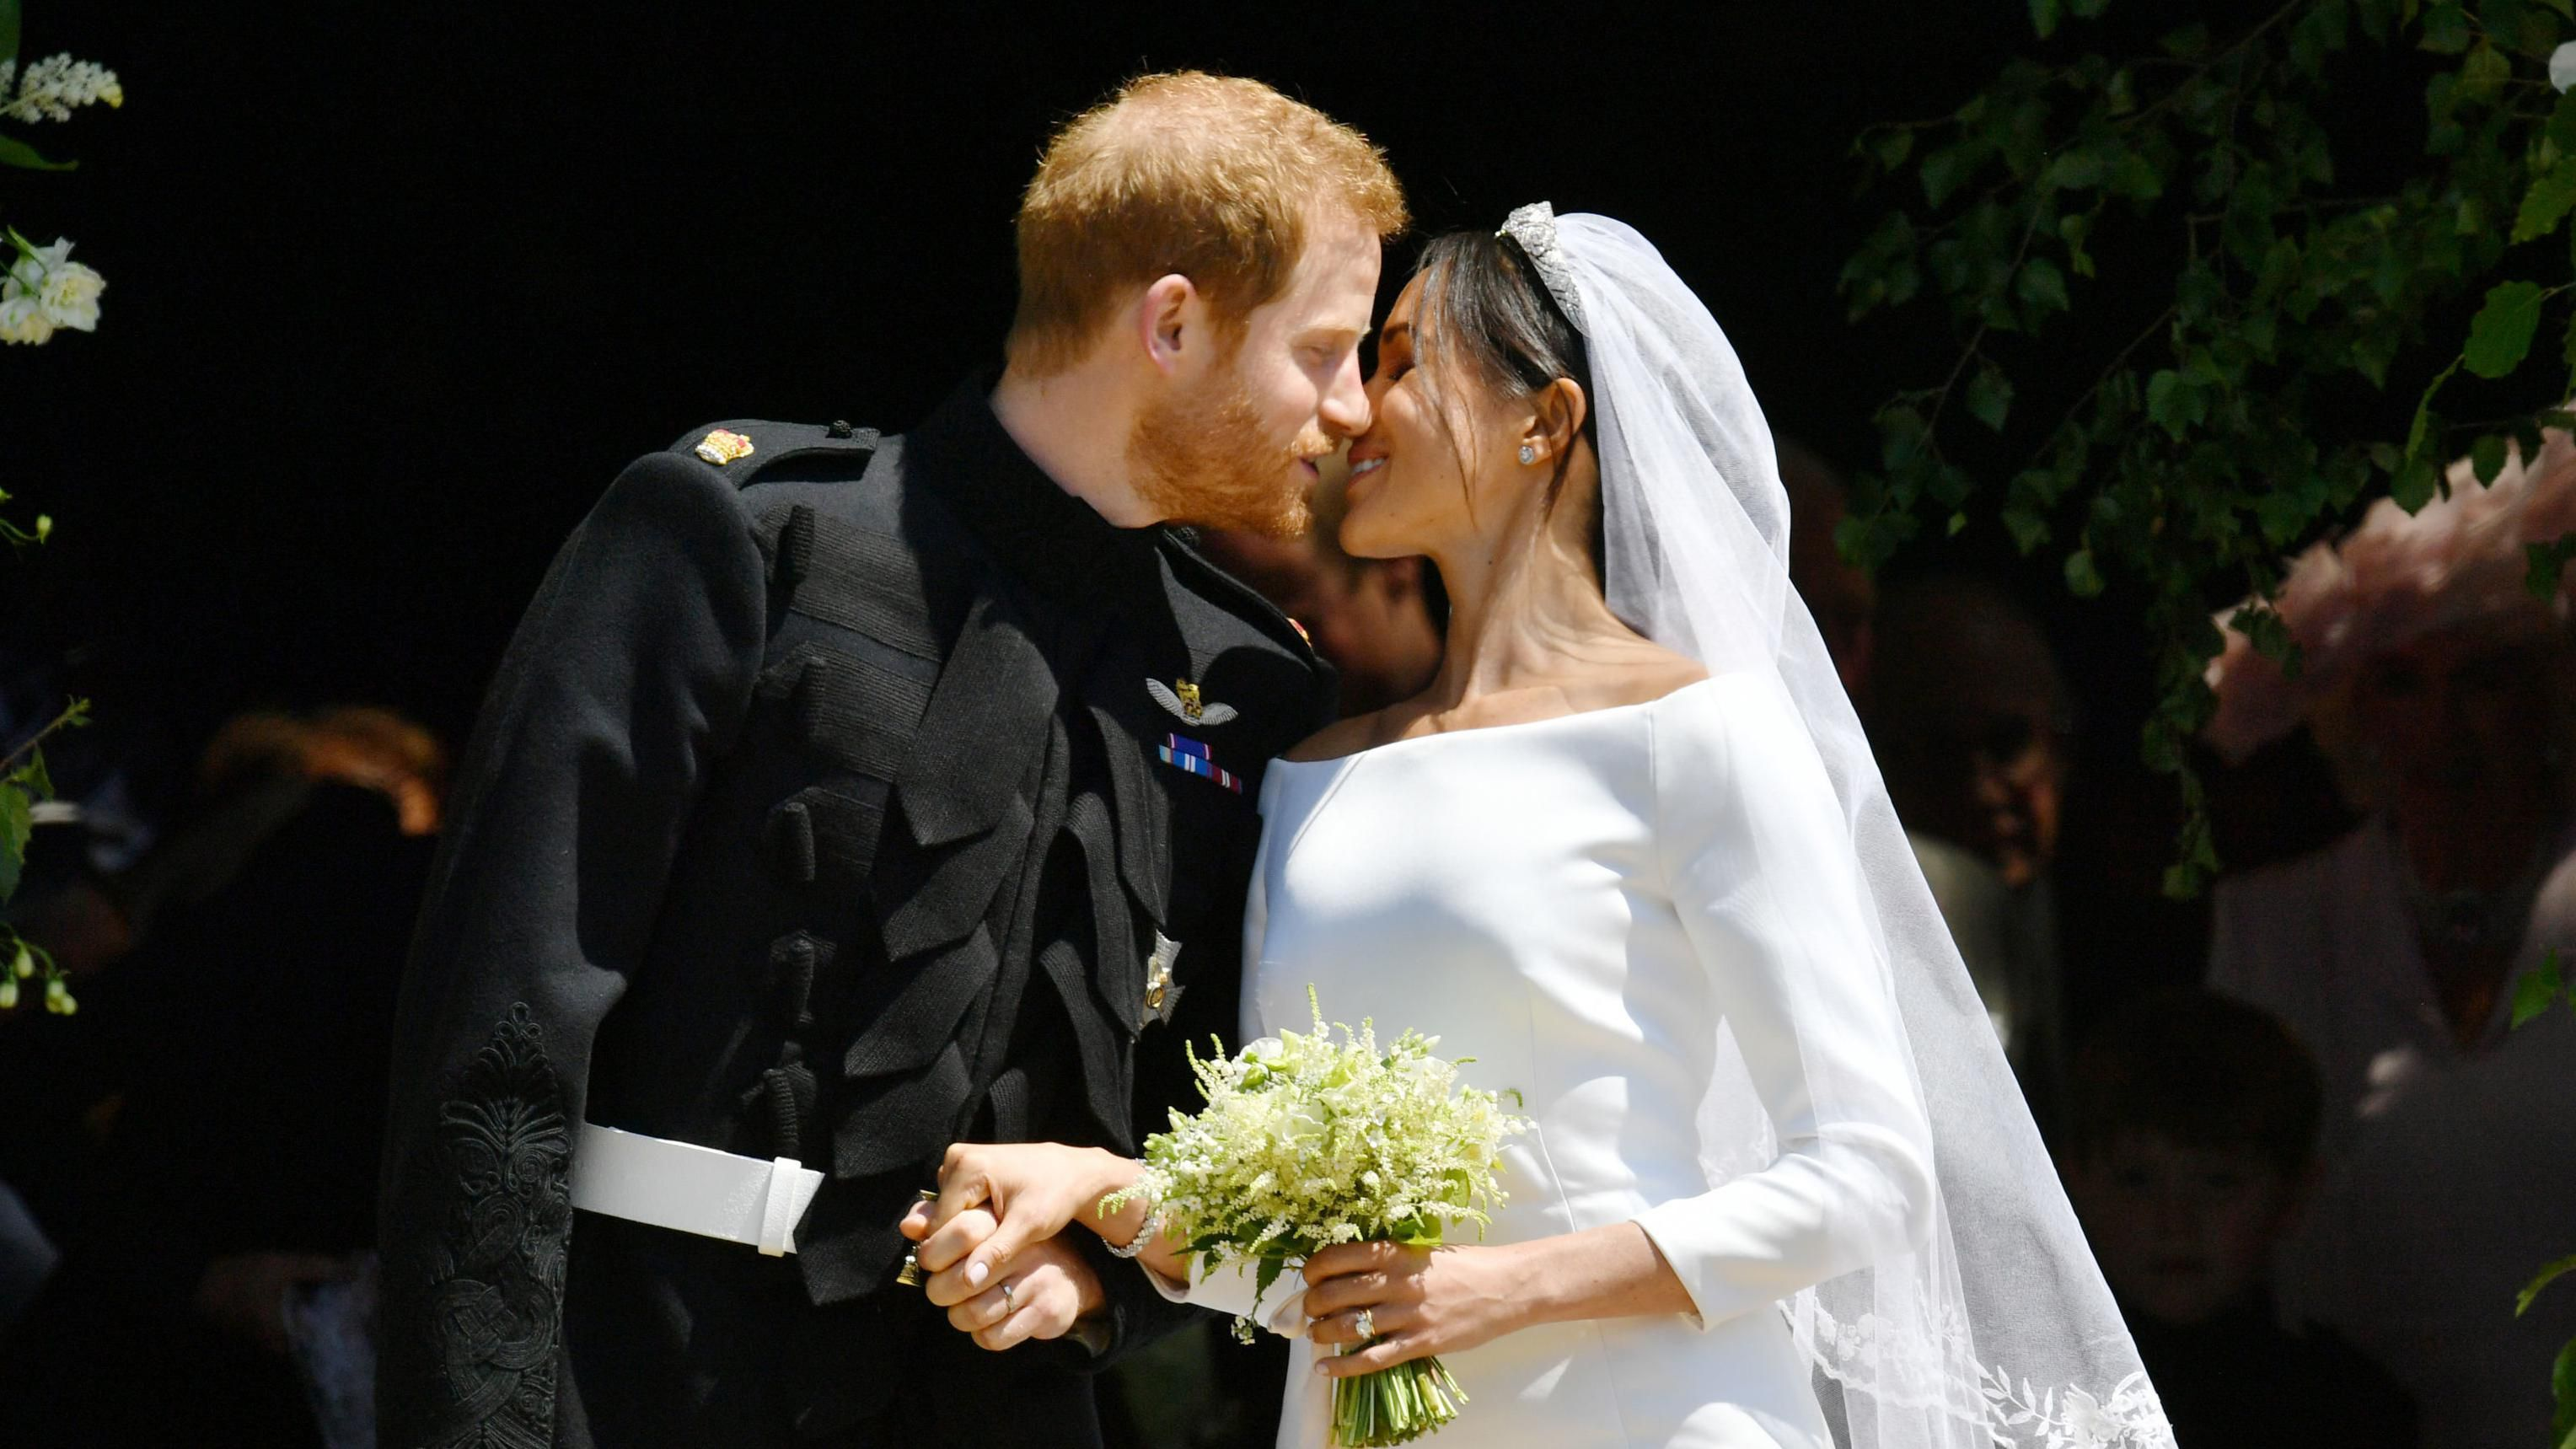 Meghan Markle Followed This Sweet Royal Wedding Bouquet Tradition